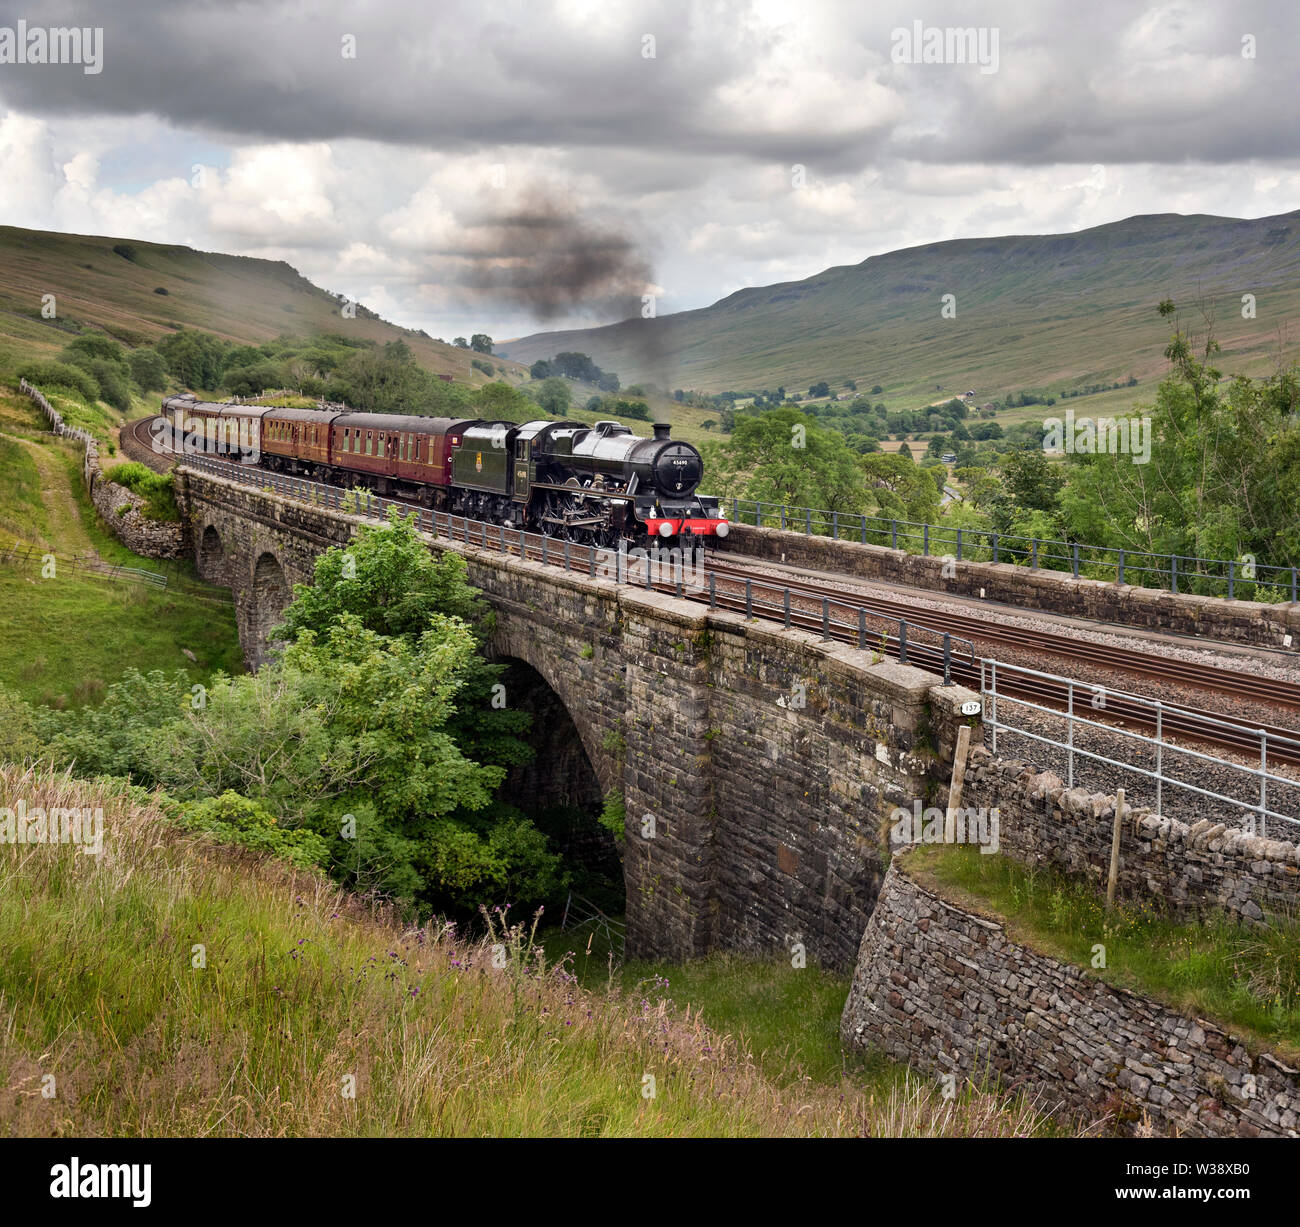 Cumbria, UK. 13th July, 2019. Steam locomotive 'Leander' hauls the Cumbrian Mountain Express special up the gradient to Ais Gill summit heading south on the Settle-Carlisle railway line. Steam specials over the route are a fairly regular fixture over the Summer period. Credit: John Bentley/Alamy Live News - Stock Image